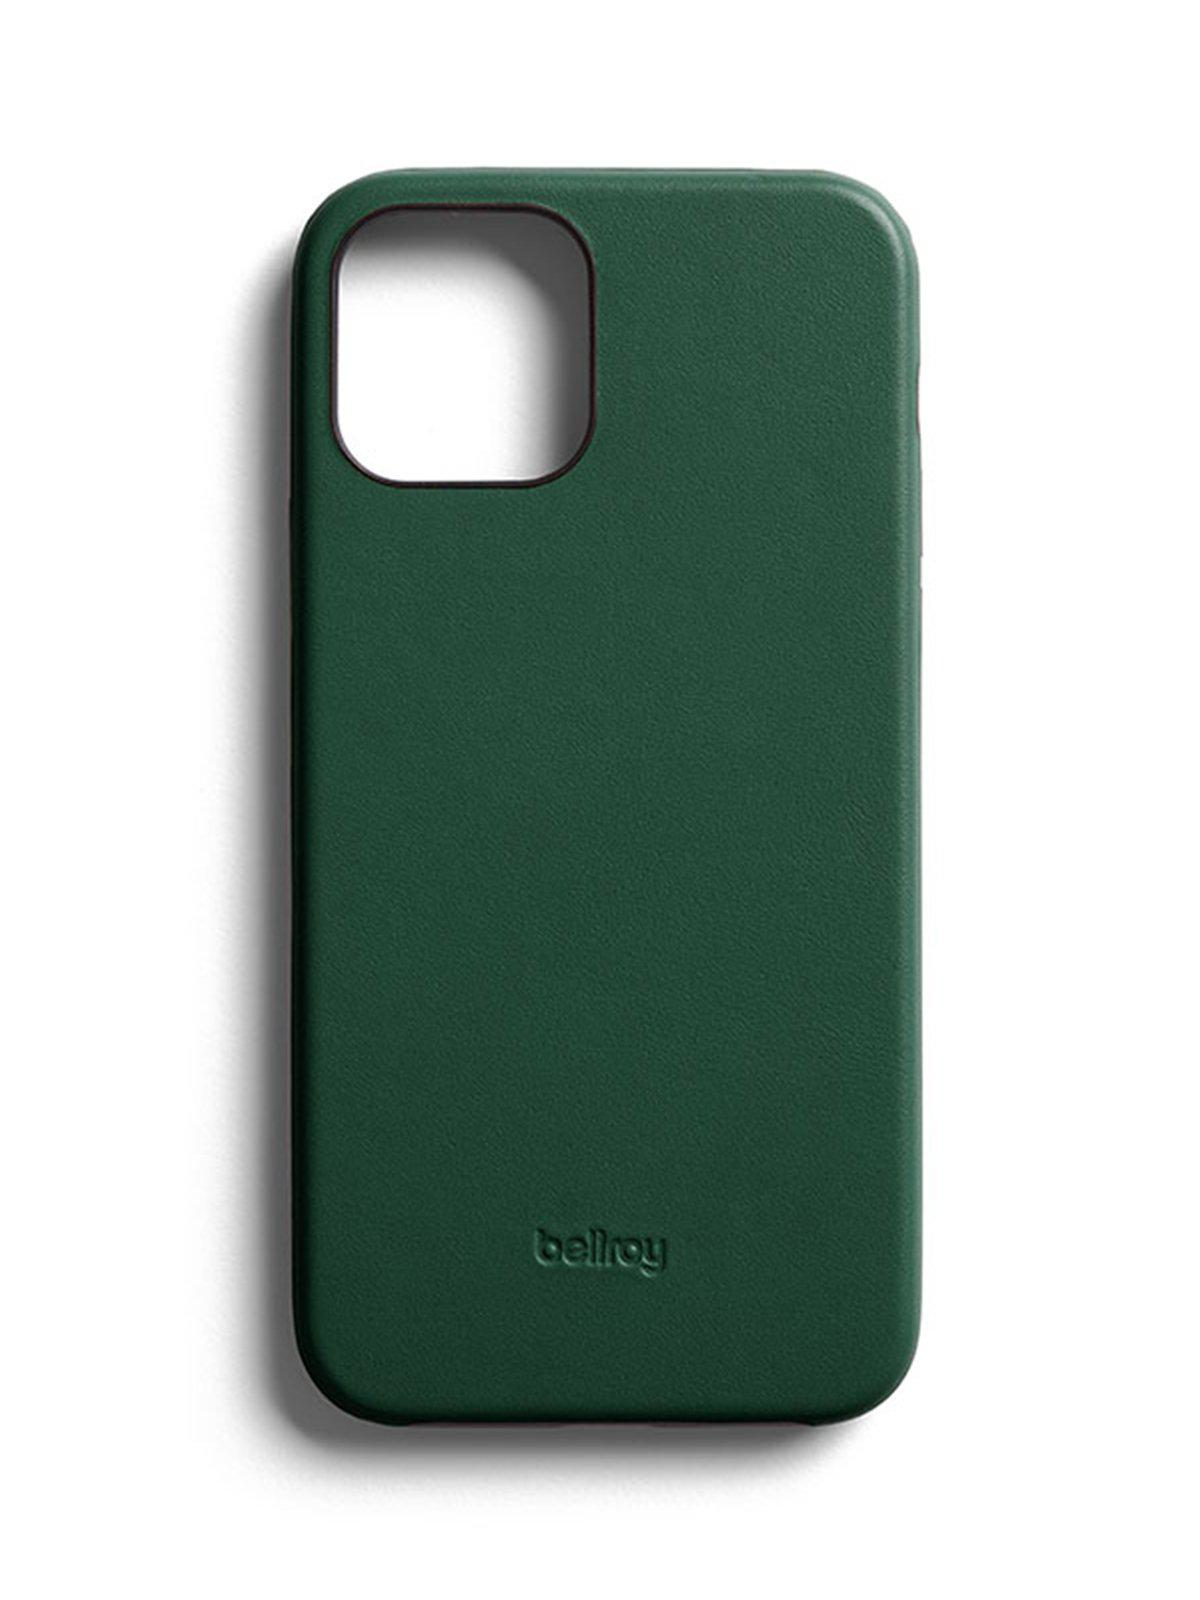 Bellroy Phone Case 0 Card iPhone 12 Pro Max Racing Green